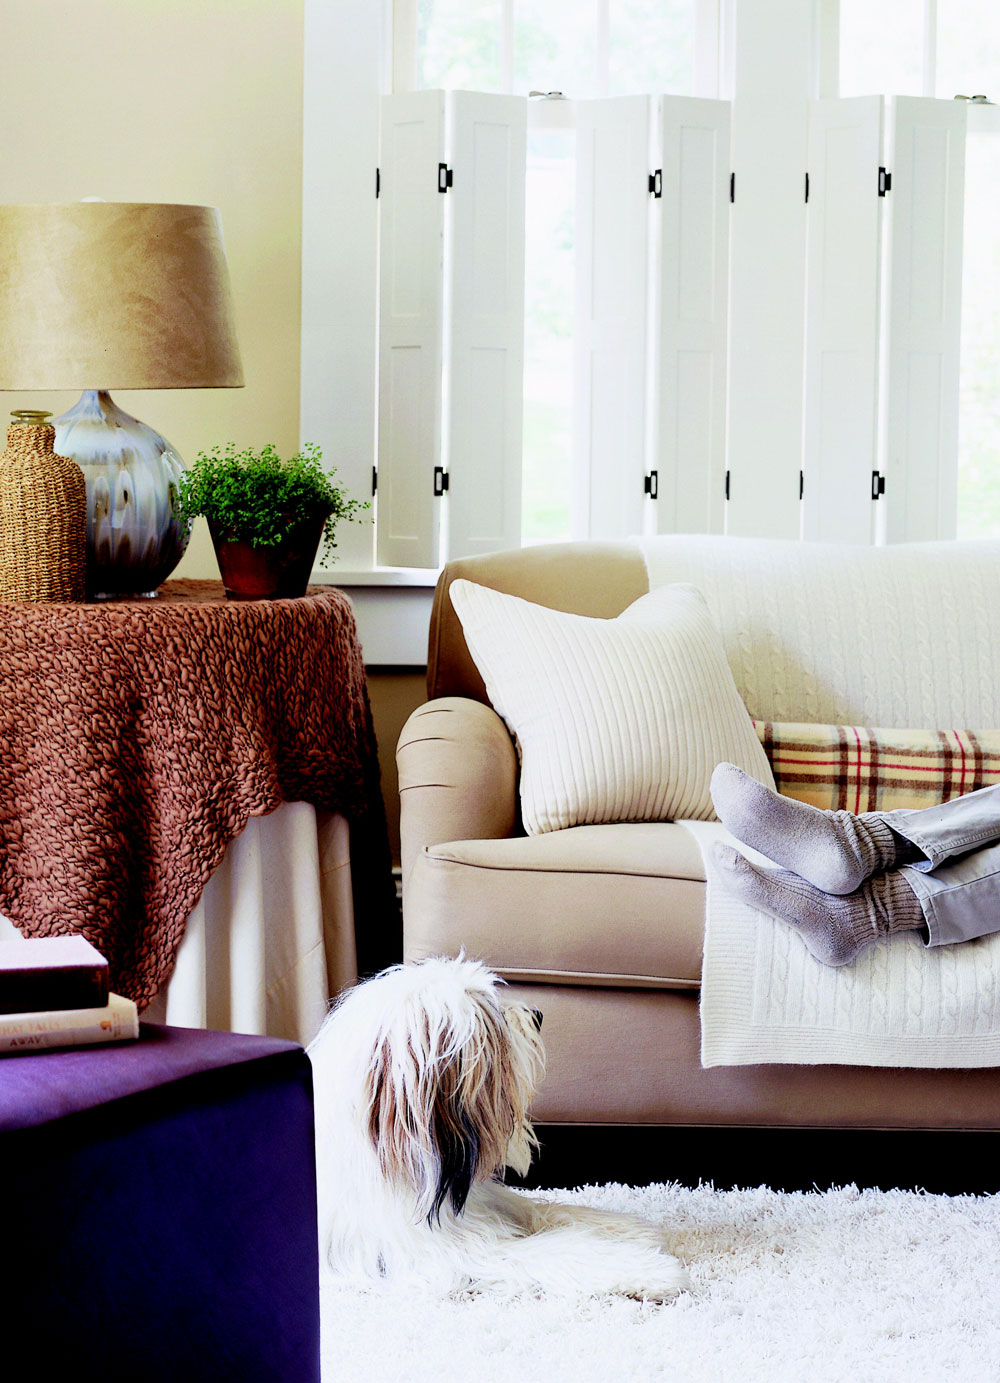 Fluffy, furry, woolly decor